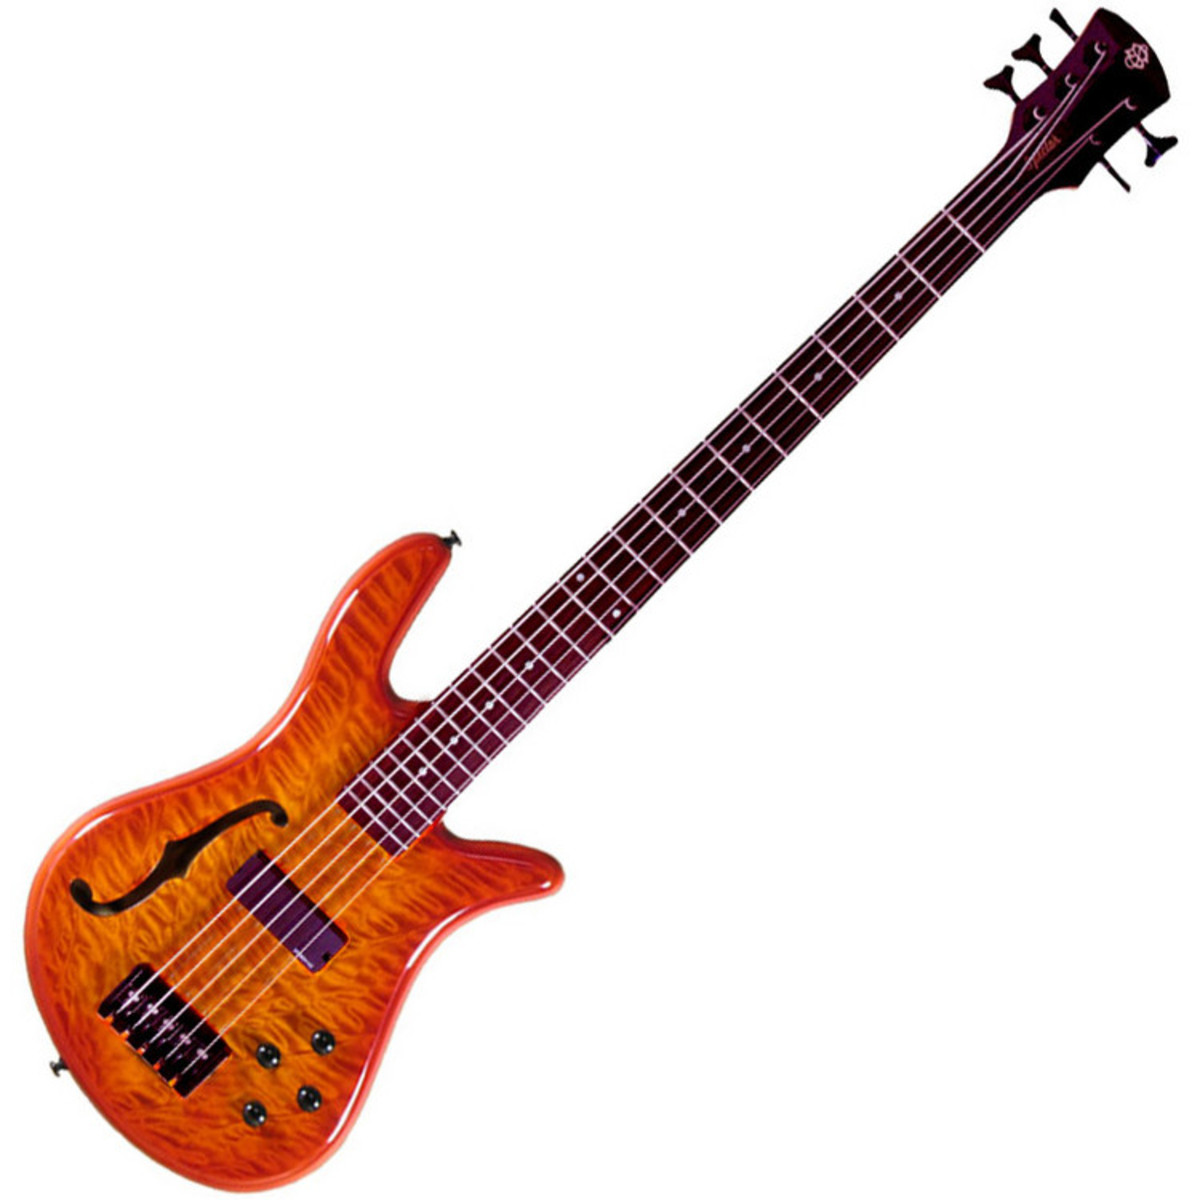 Spector Piezo Wiring Wire Schematic Diagram Electric Guitar Diagrams As Well Pickup Bass Pro Series Spectorcore 5 Amber At Rh Gear4music Com Projects 2